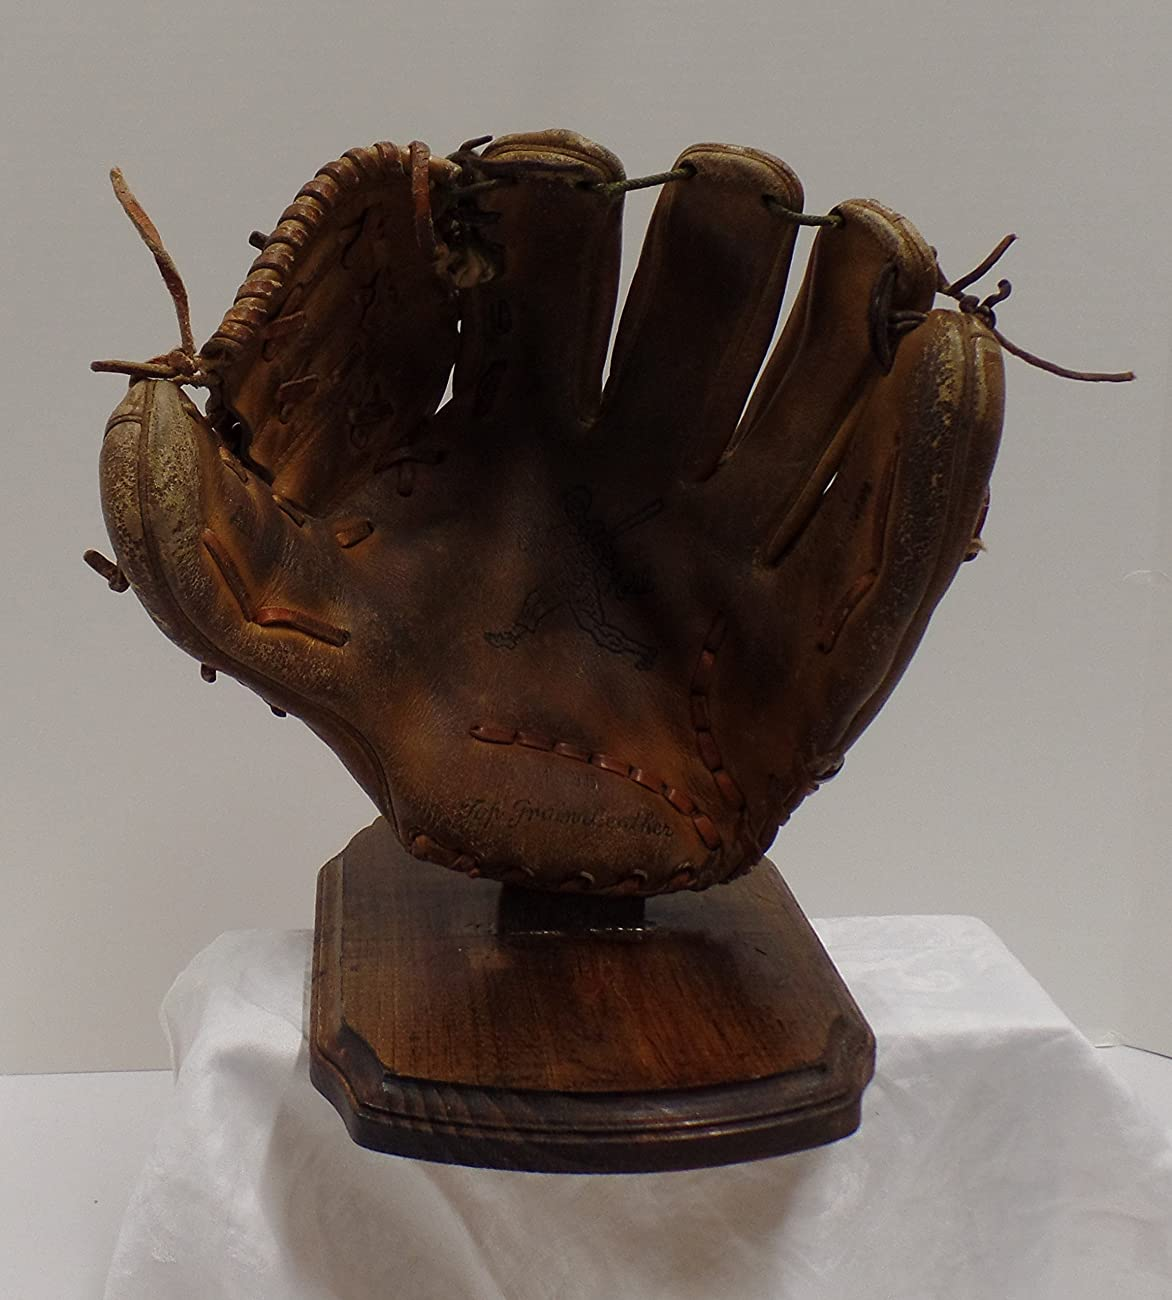 Vintage Clete Boyer Autograph Model 1035 Baseball Glove - Great for Mancave or Baseball Themed Decor (Free Shipping) 0